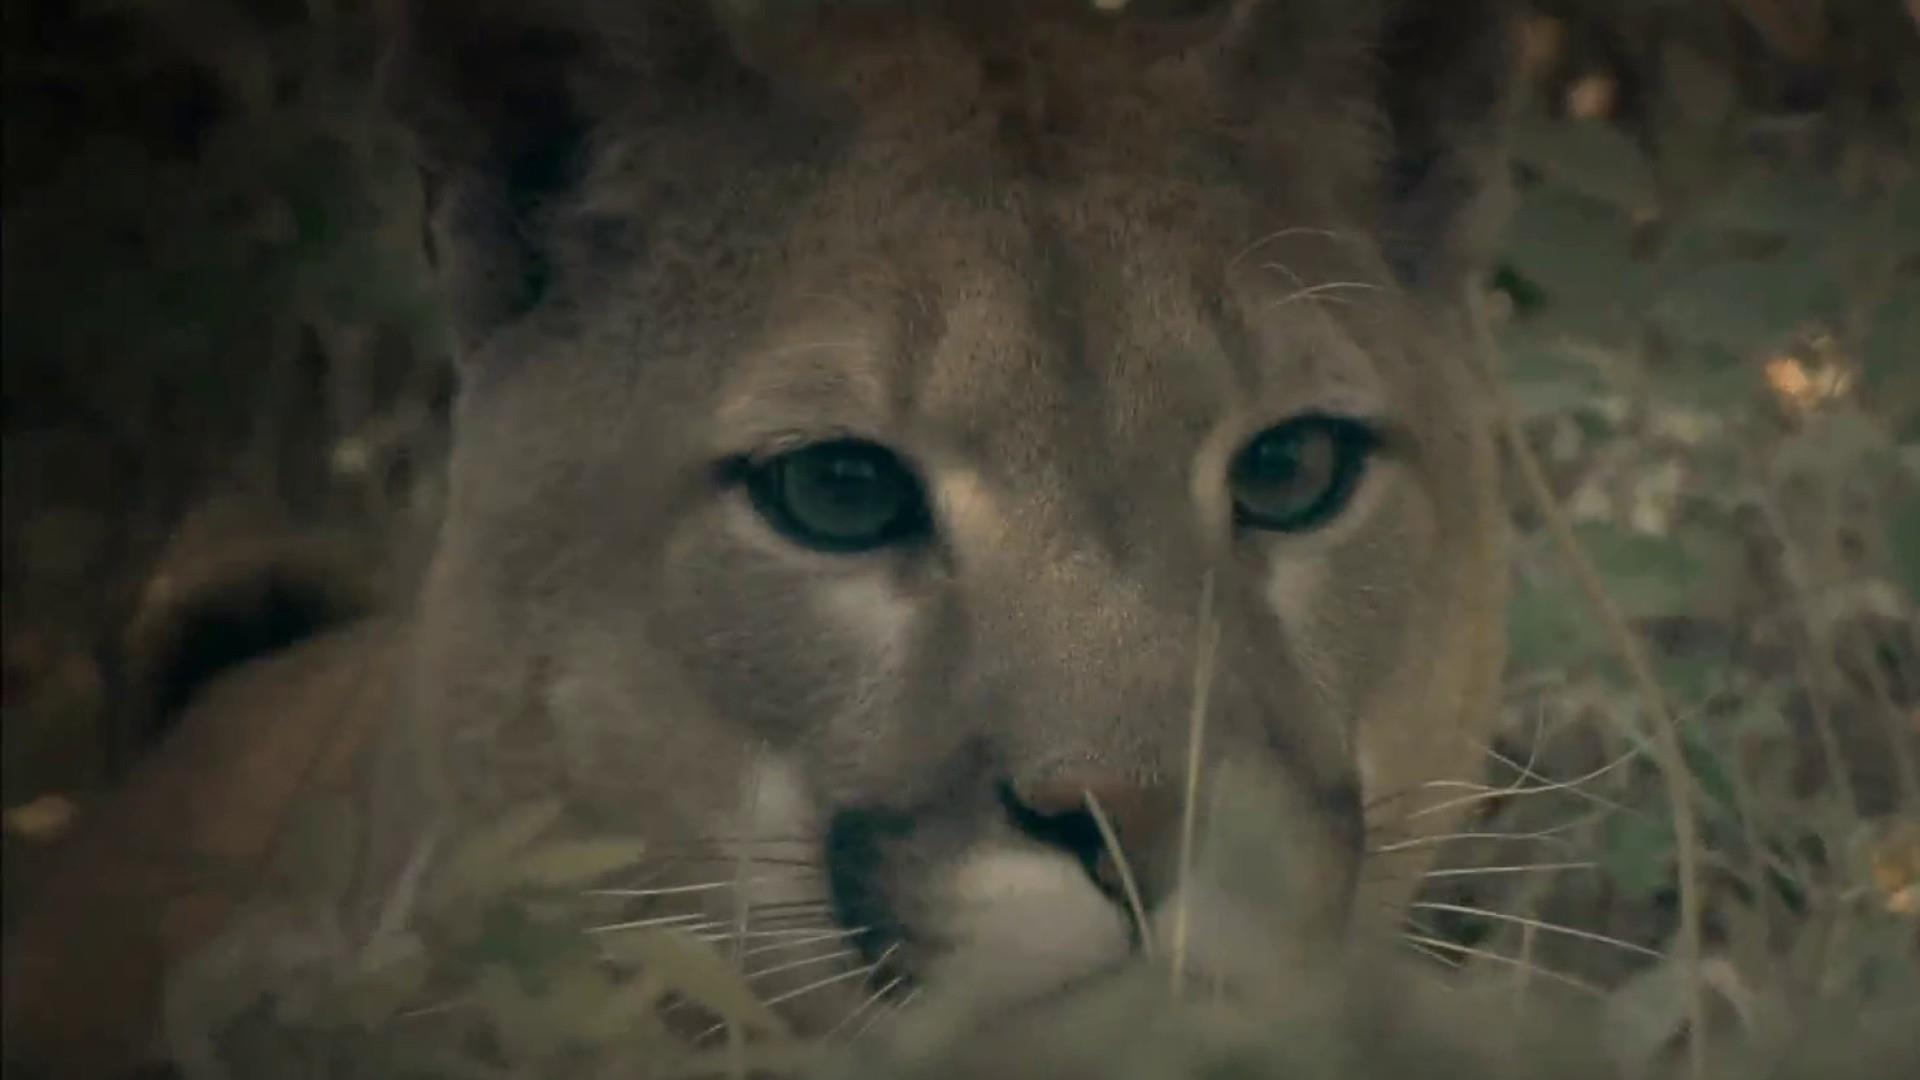 Colorado runner who killed mountain lion suffocated him in 'fight for survival'